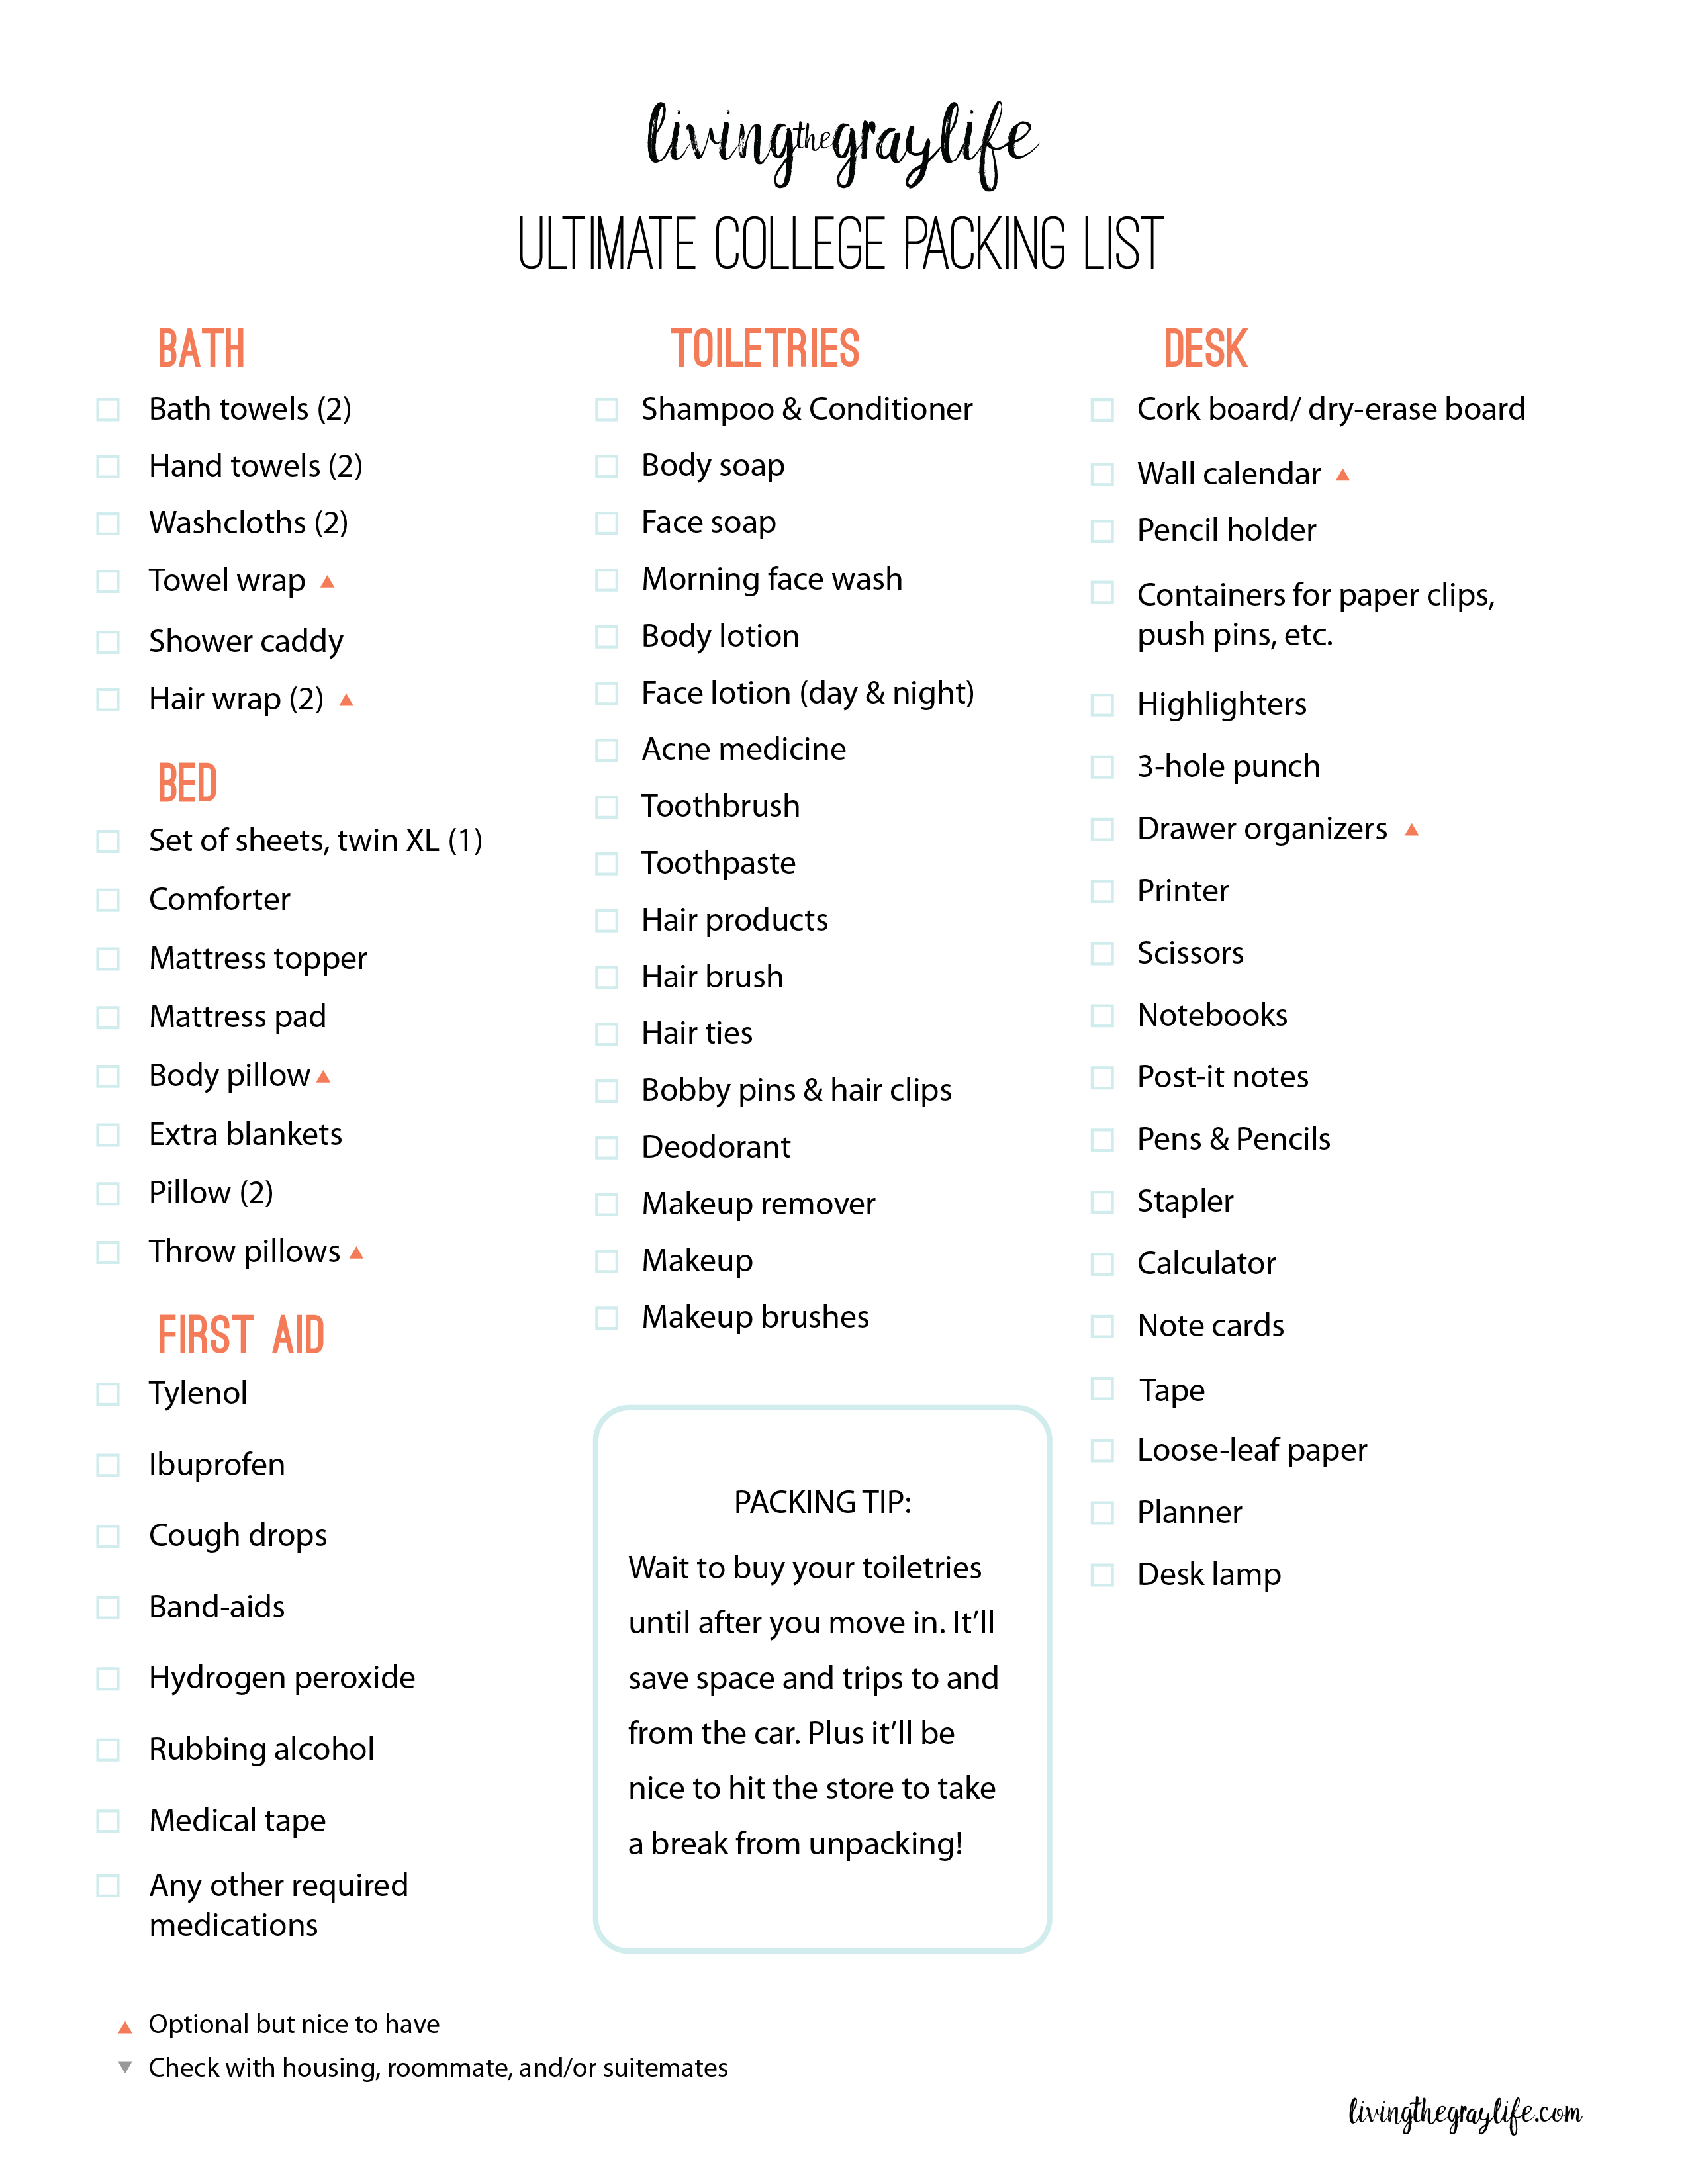 Ultimate College Packing Guide images